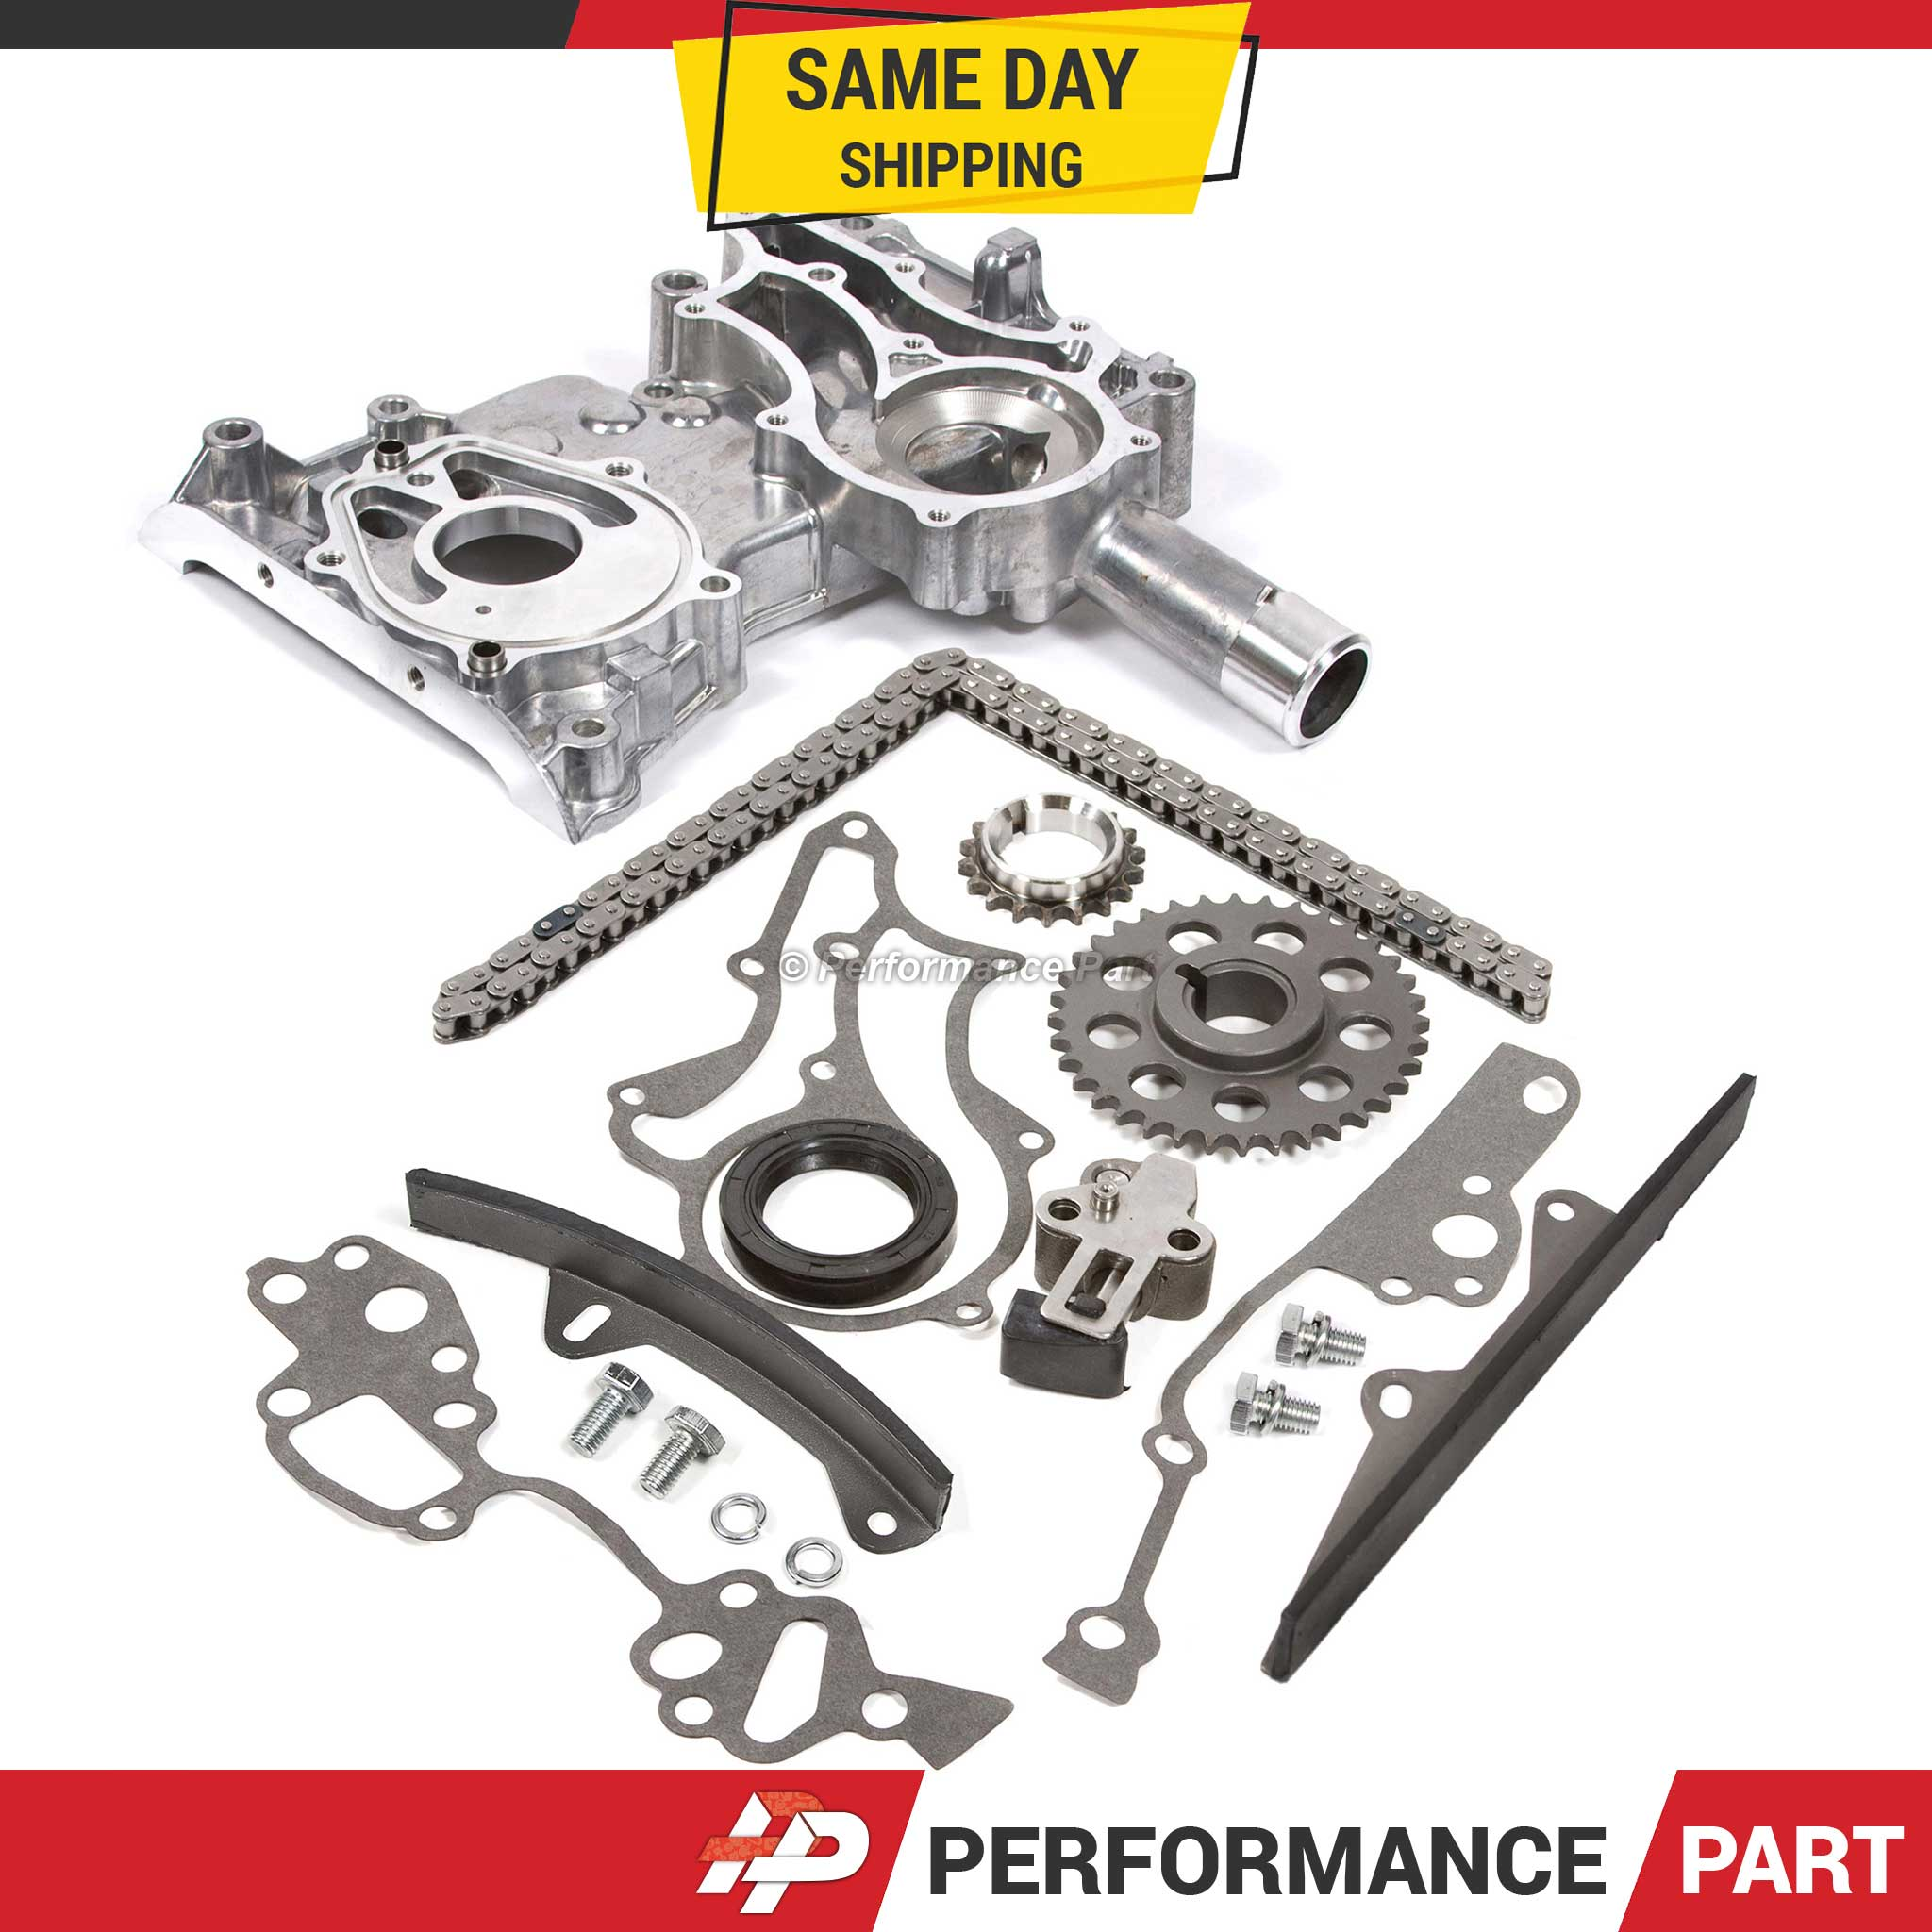 Details about 85-95 Toyota 22R 22RE Timing Chain Kit w/ 2 Metal Guides +  Timing Cover